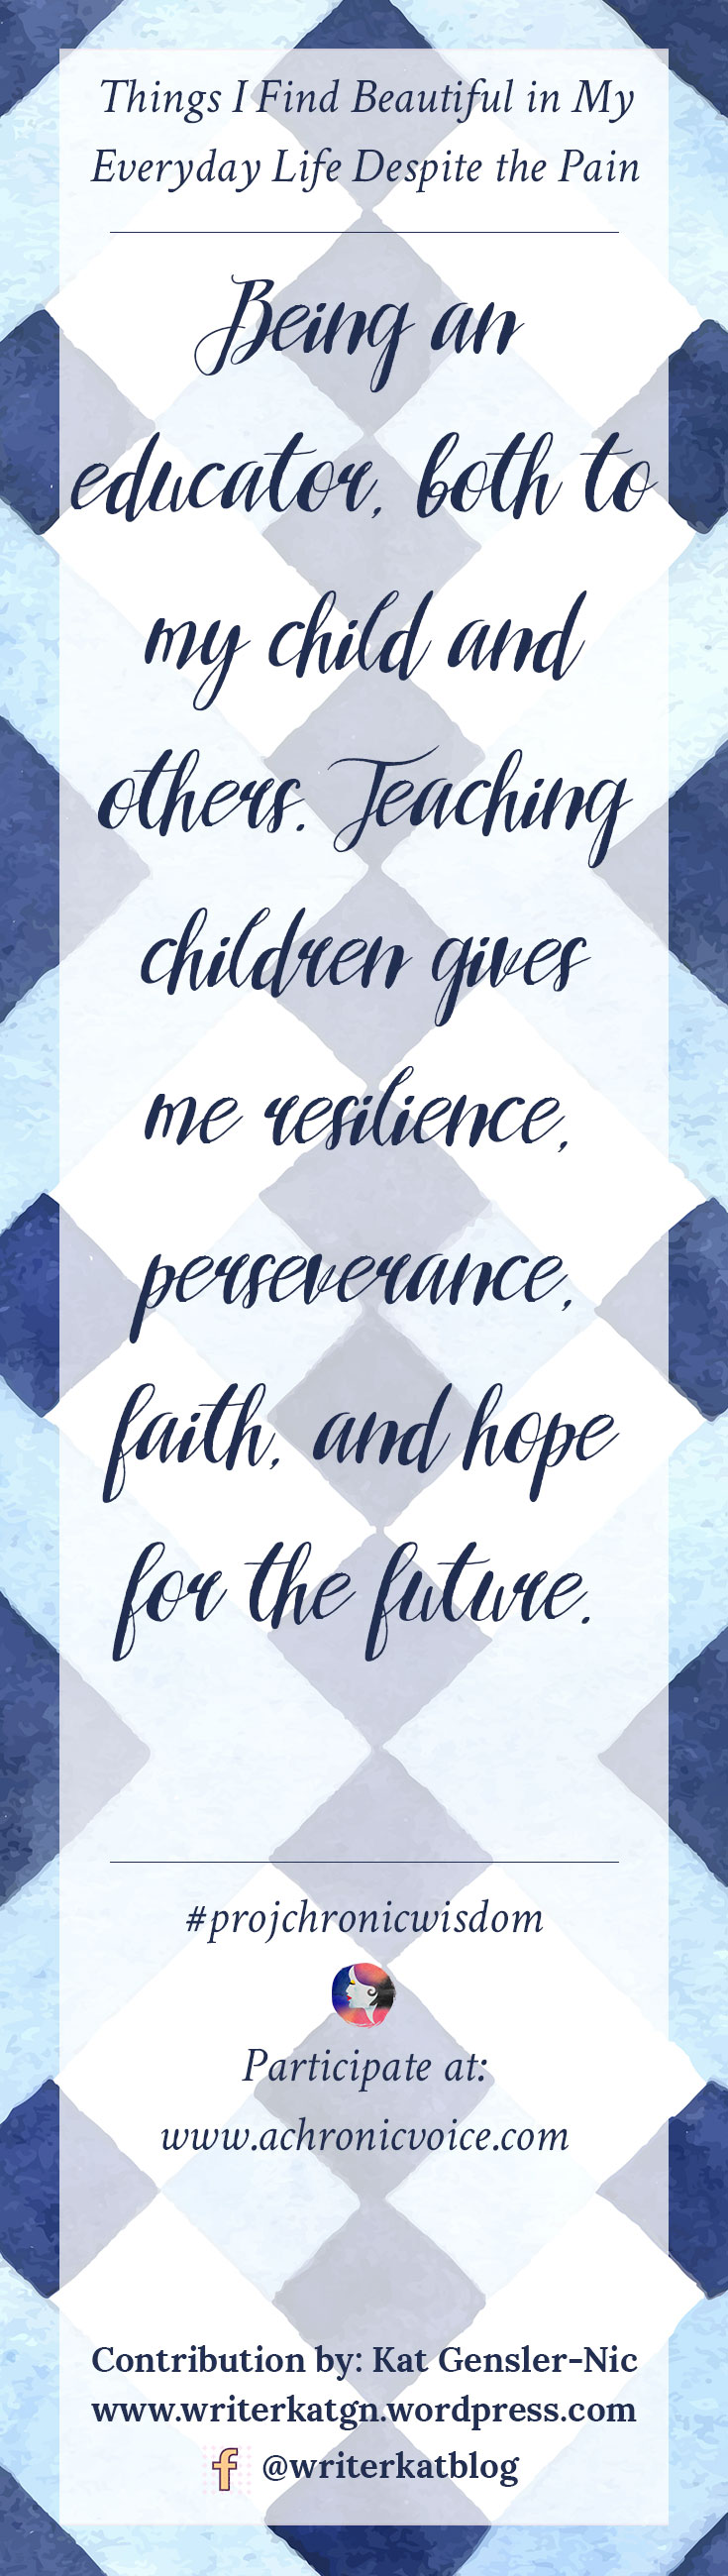 """""""Being an educator, both to my child and others. Teaching children gives me resilience, perseverance, faith, and hope for the future."""" - Kat Gensler-Nic   Participate here: www.achronicvoice.com"""